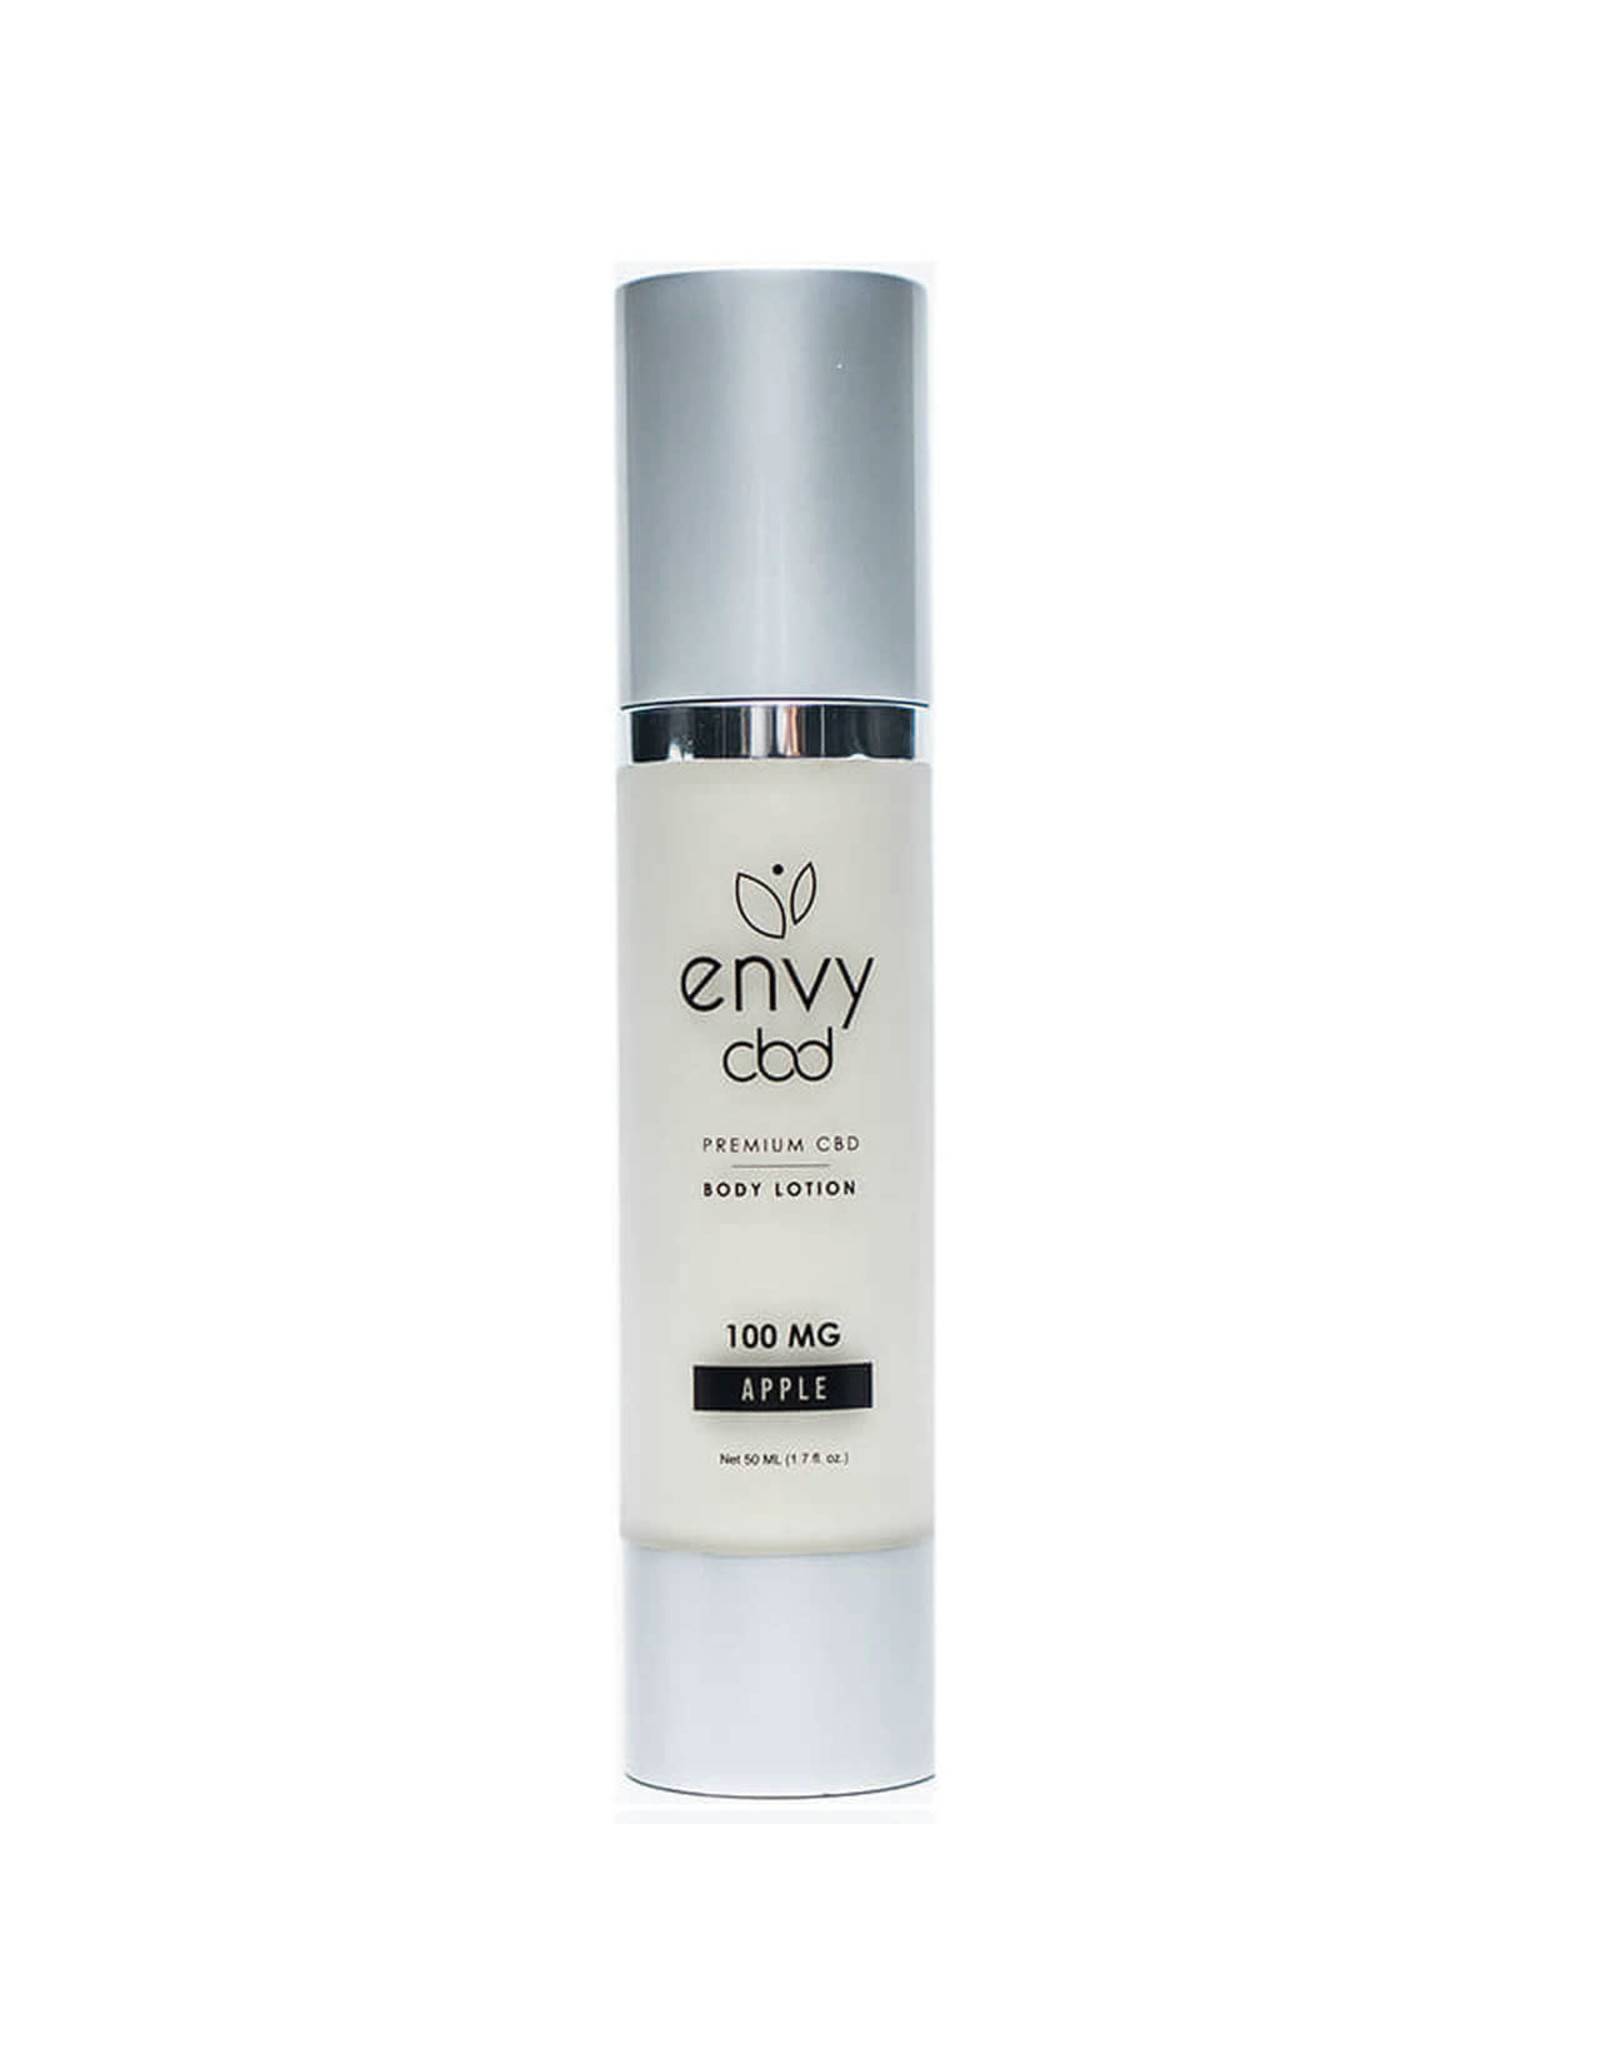 Envy Envy Green Apple Body Lotion 100mg